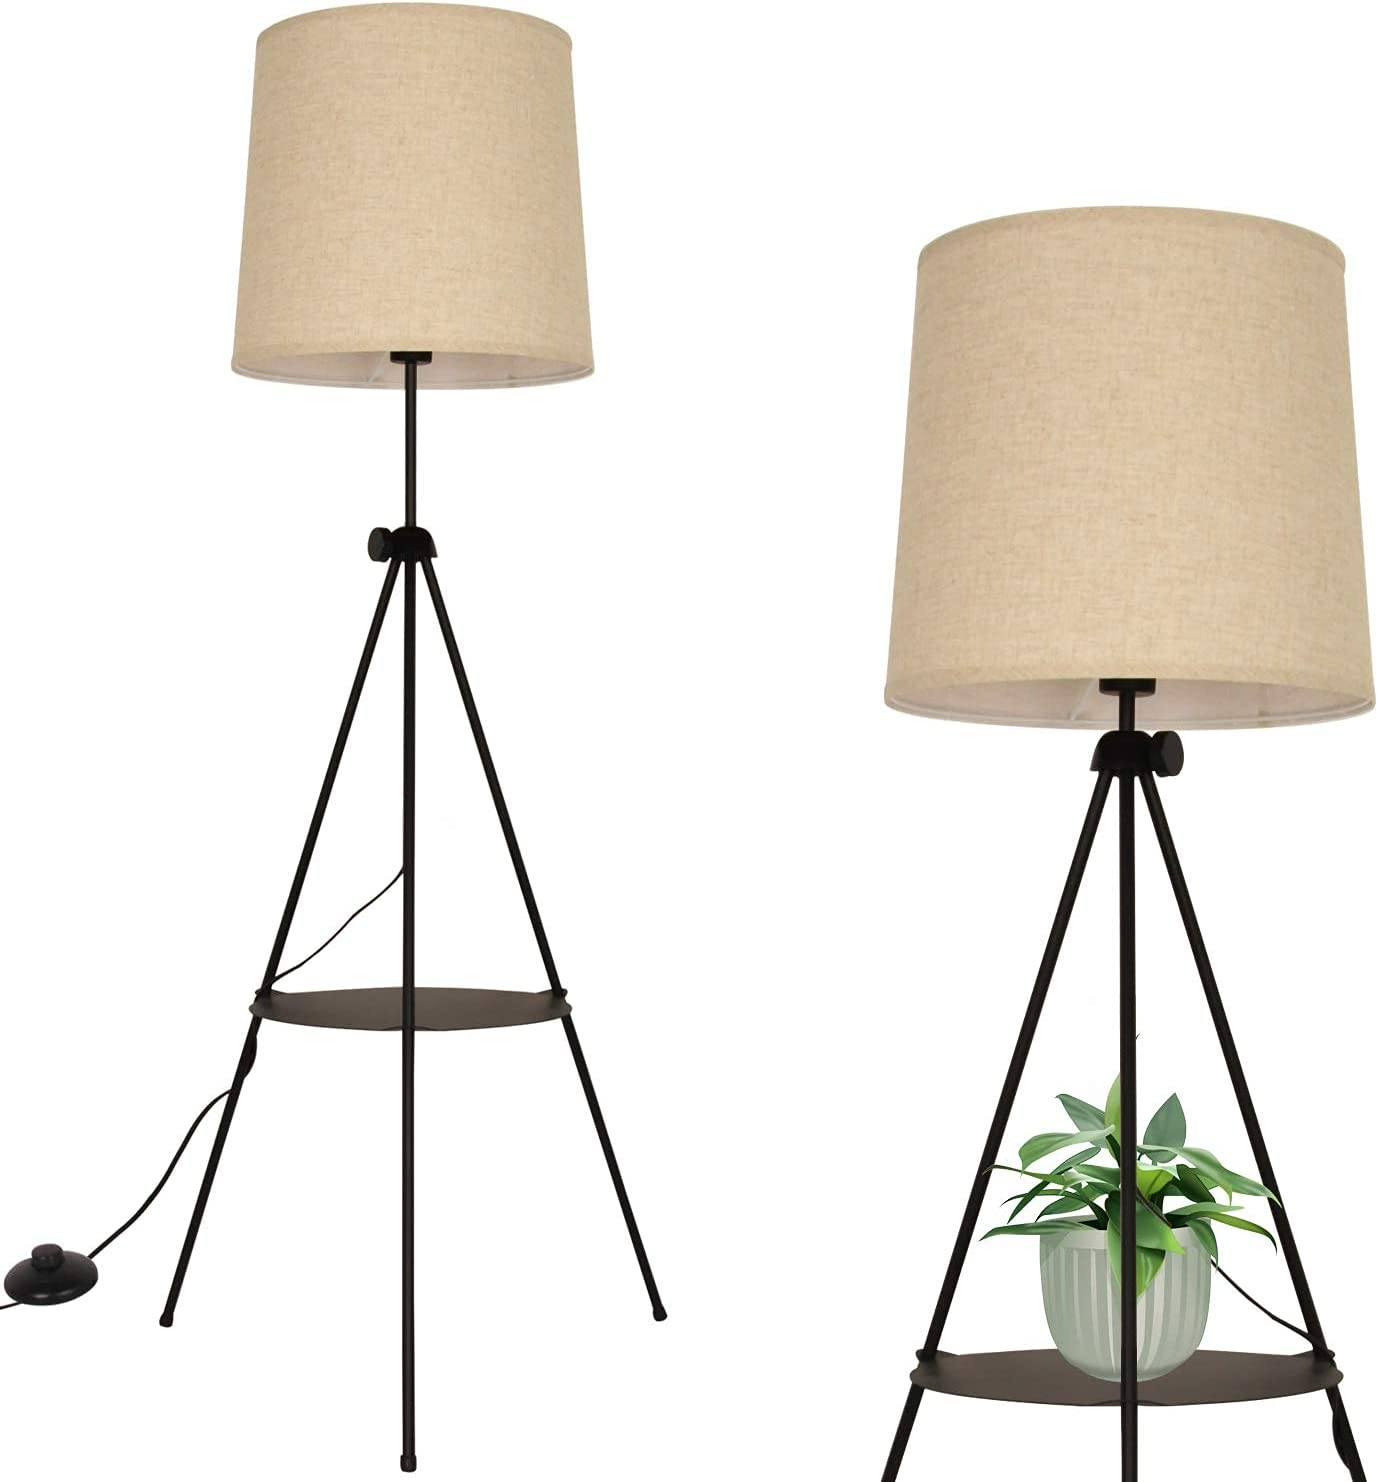 Modern Industrial Flaxen Lampshade Tripod Shelve Floor Rapid rise with Factory outlet Lamp